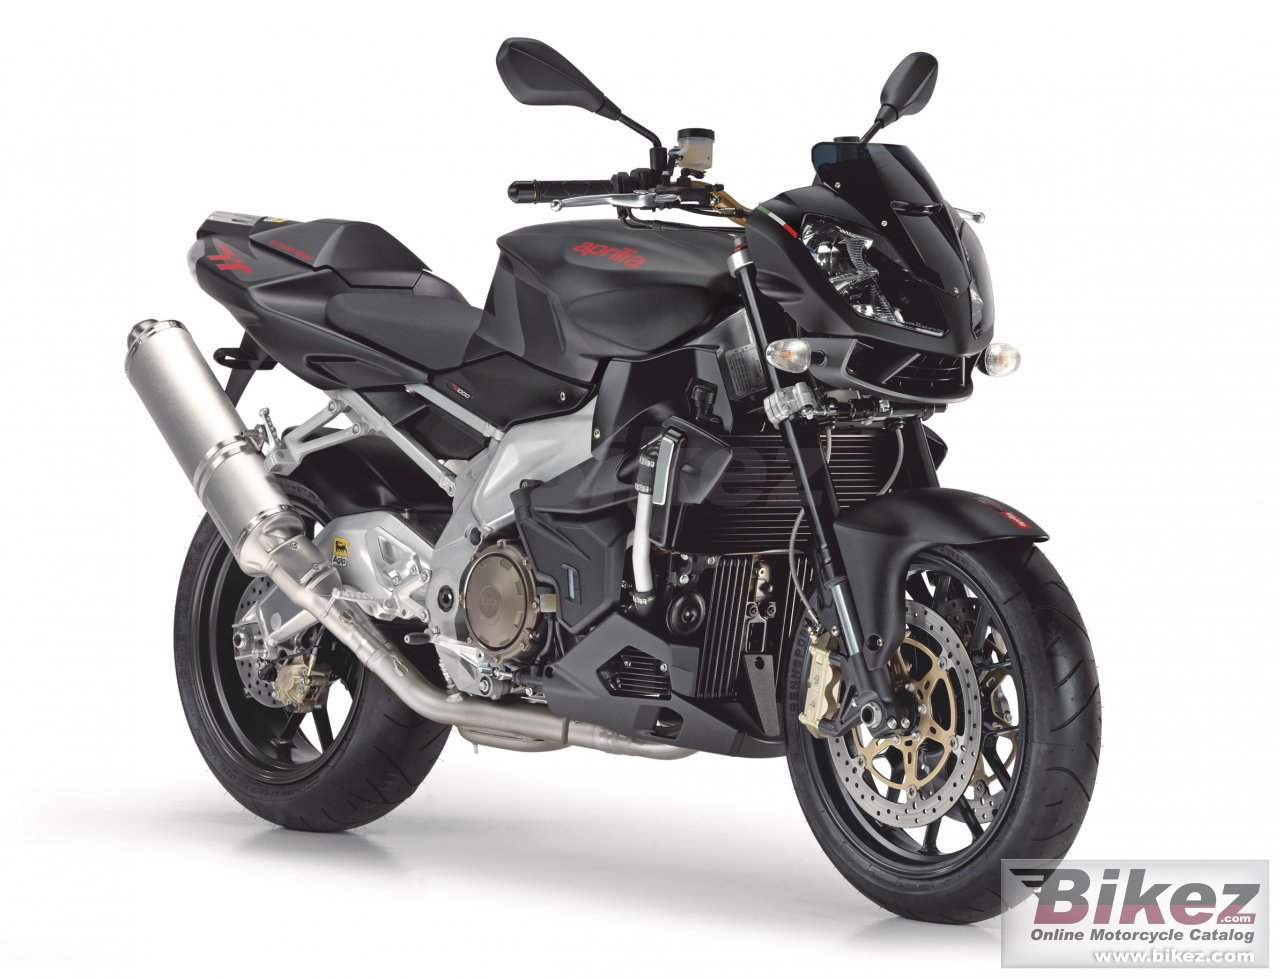 Big Aprilia tuono 1000 r picture and wallpaper from Bikez.com